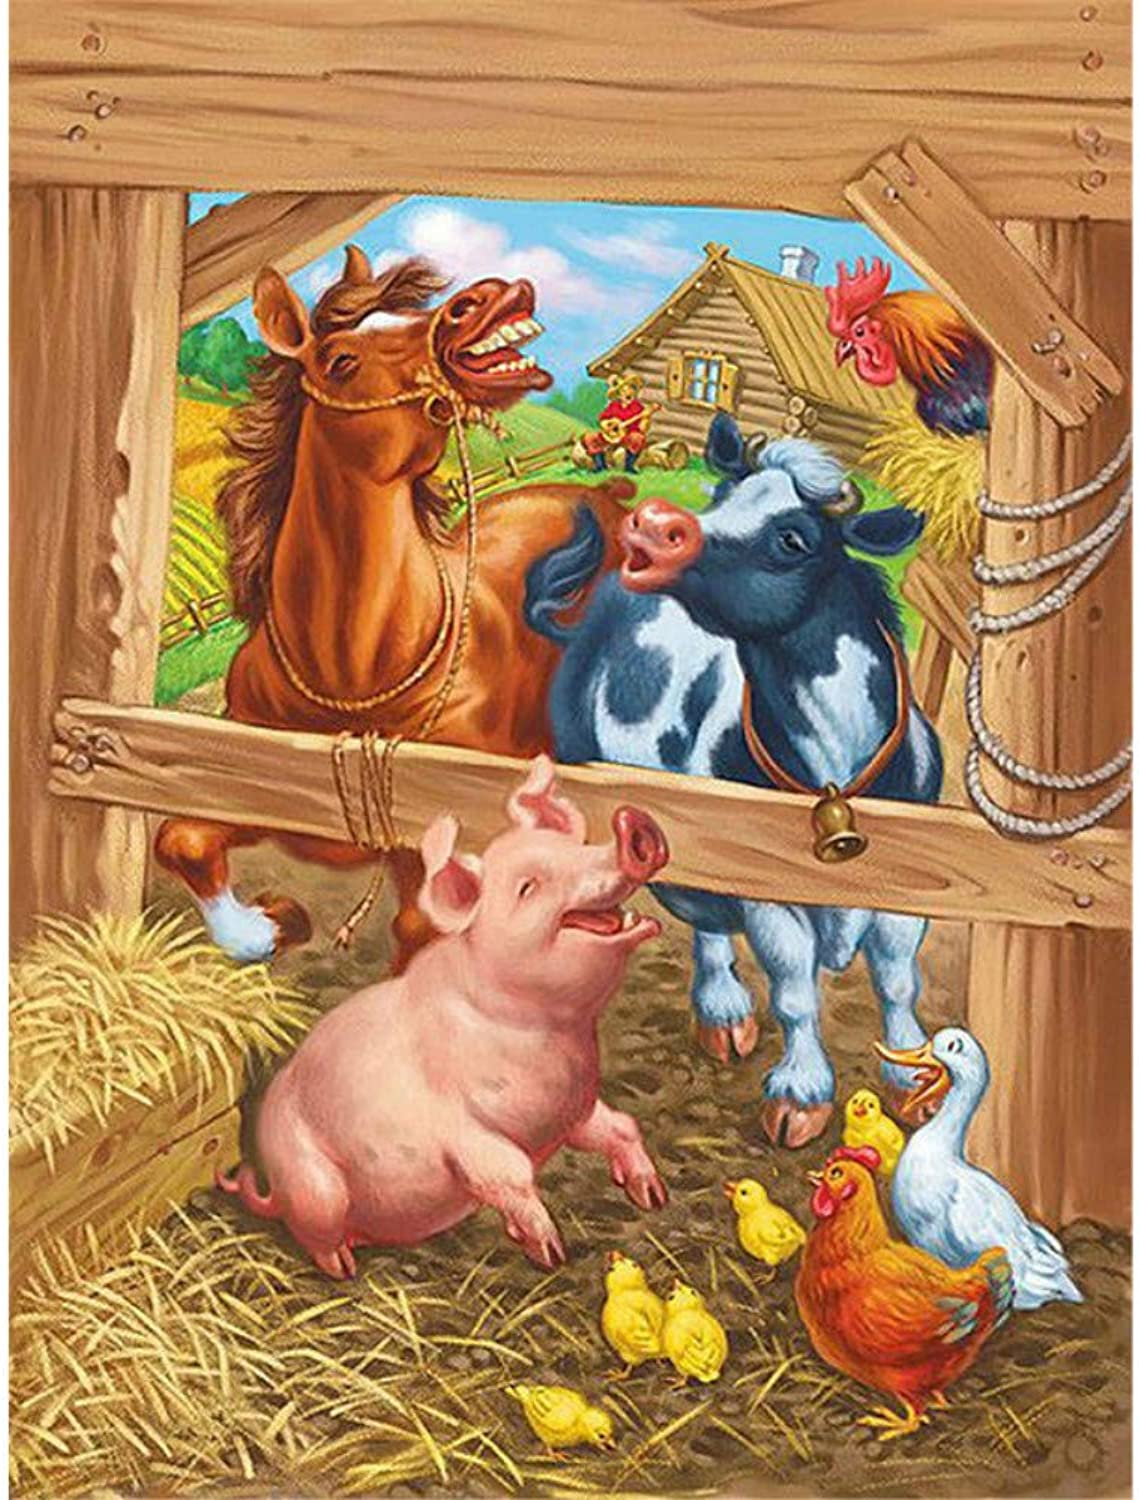 Paint by Numbers for Senior Junior Beginner Level, Paint by Numbers Set Poultry Pig with Brushes Paints and Canvas Home Decor 16X20 Inch